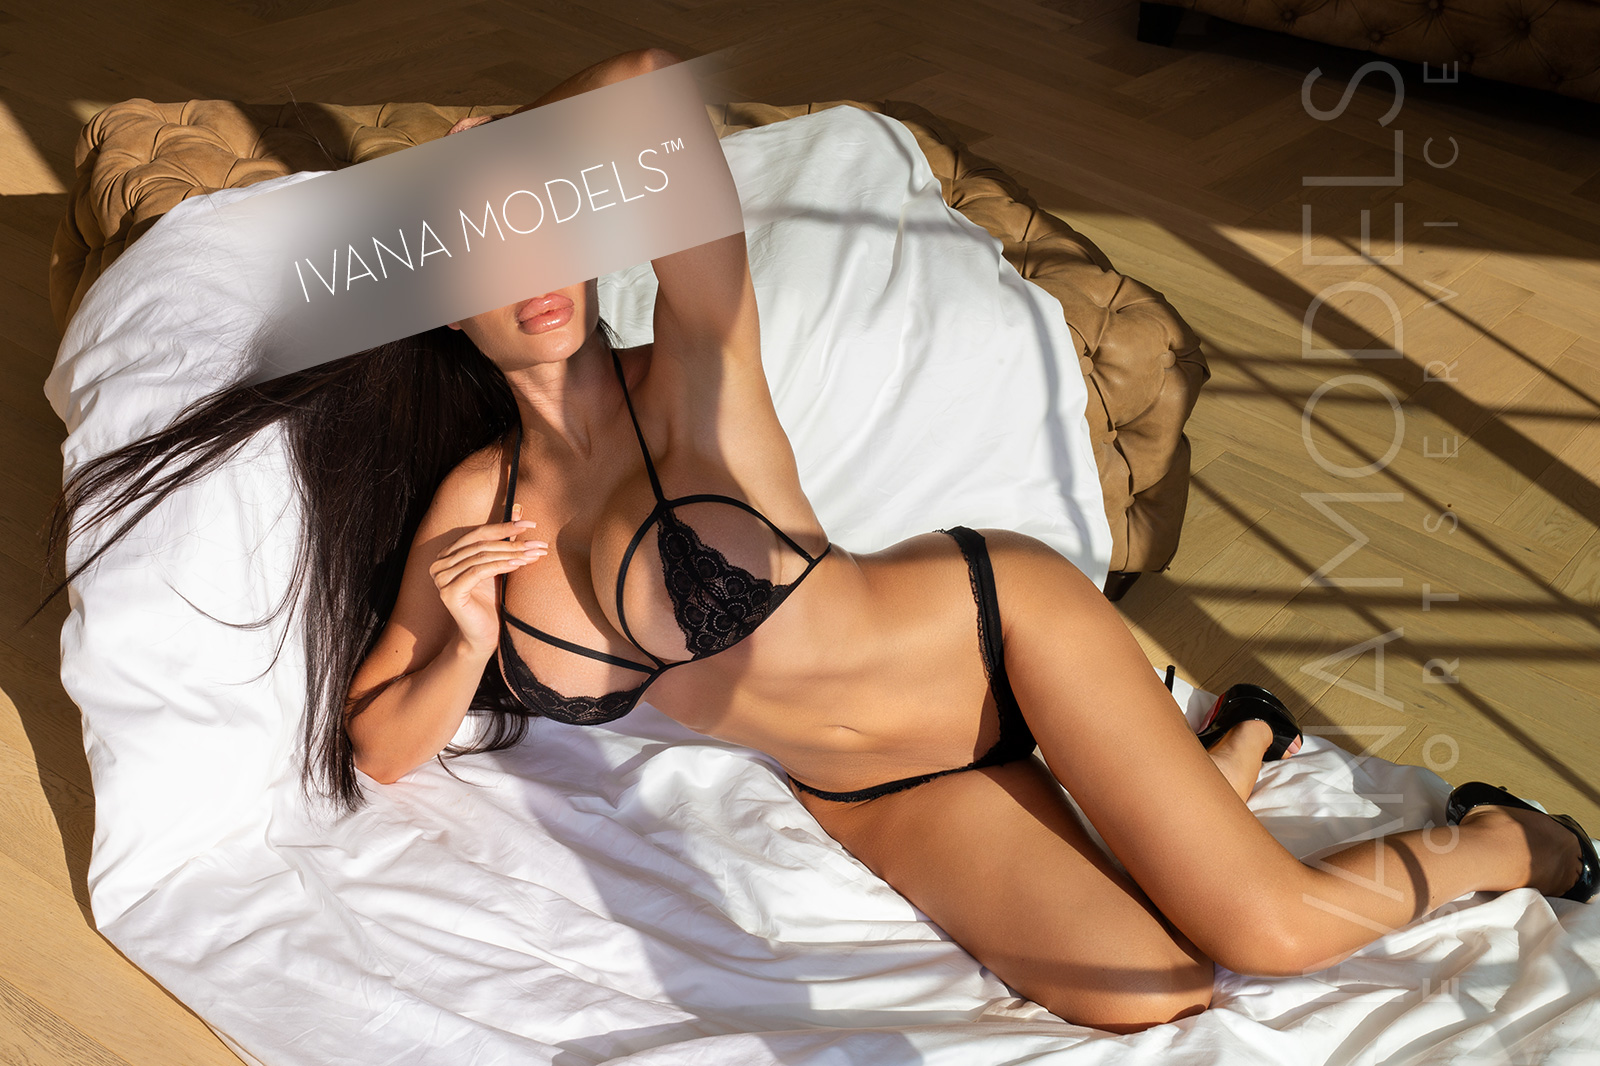 Elite escort service Zurich with Sofia